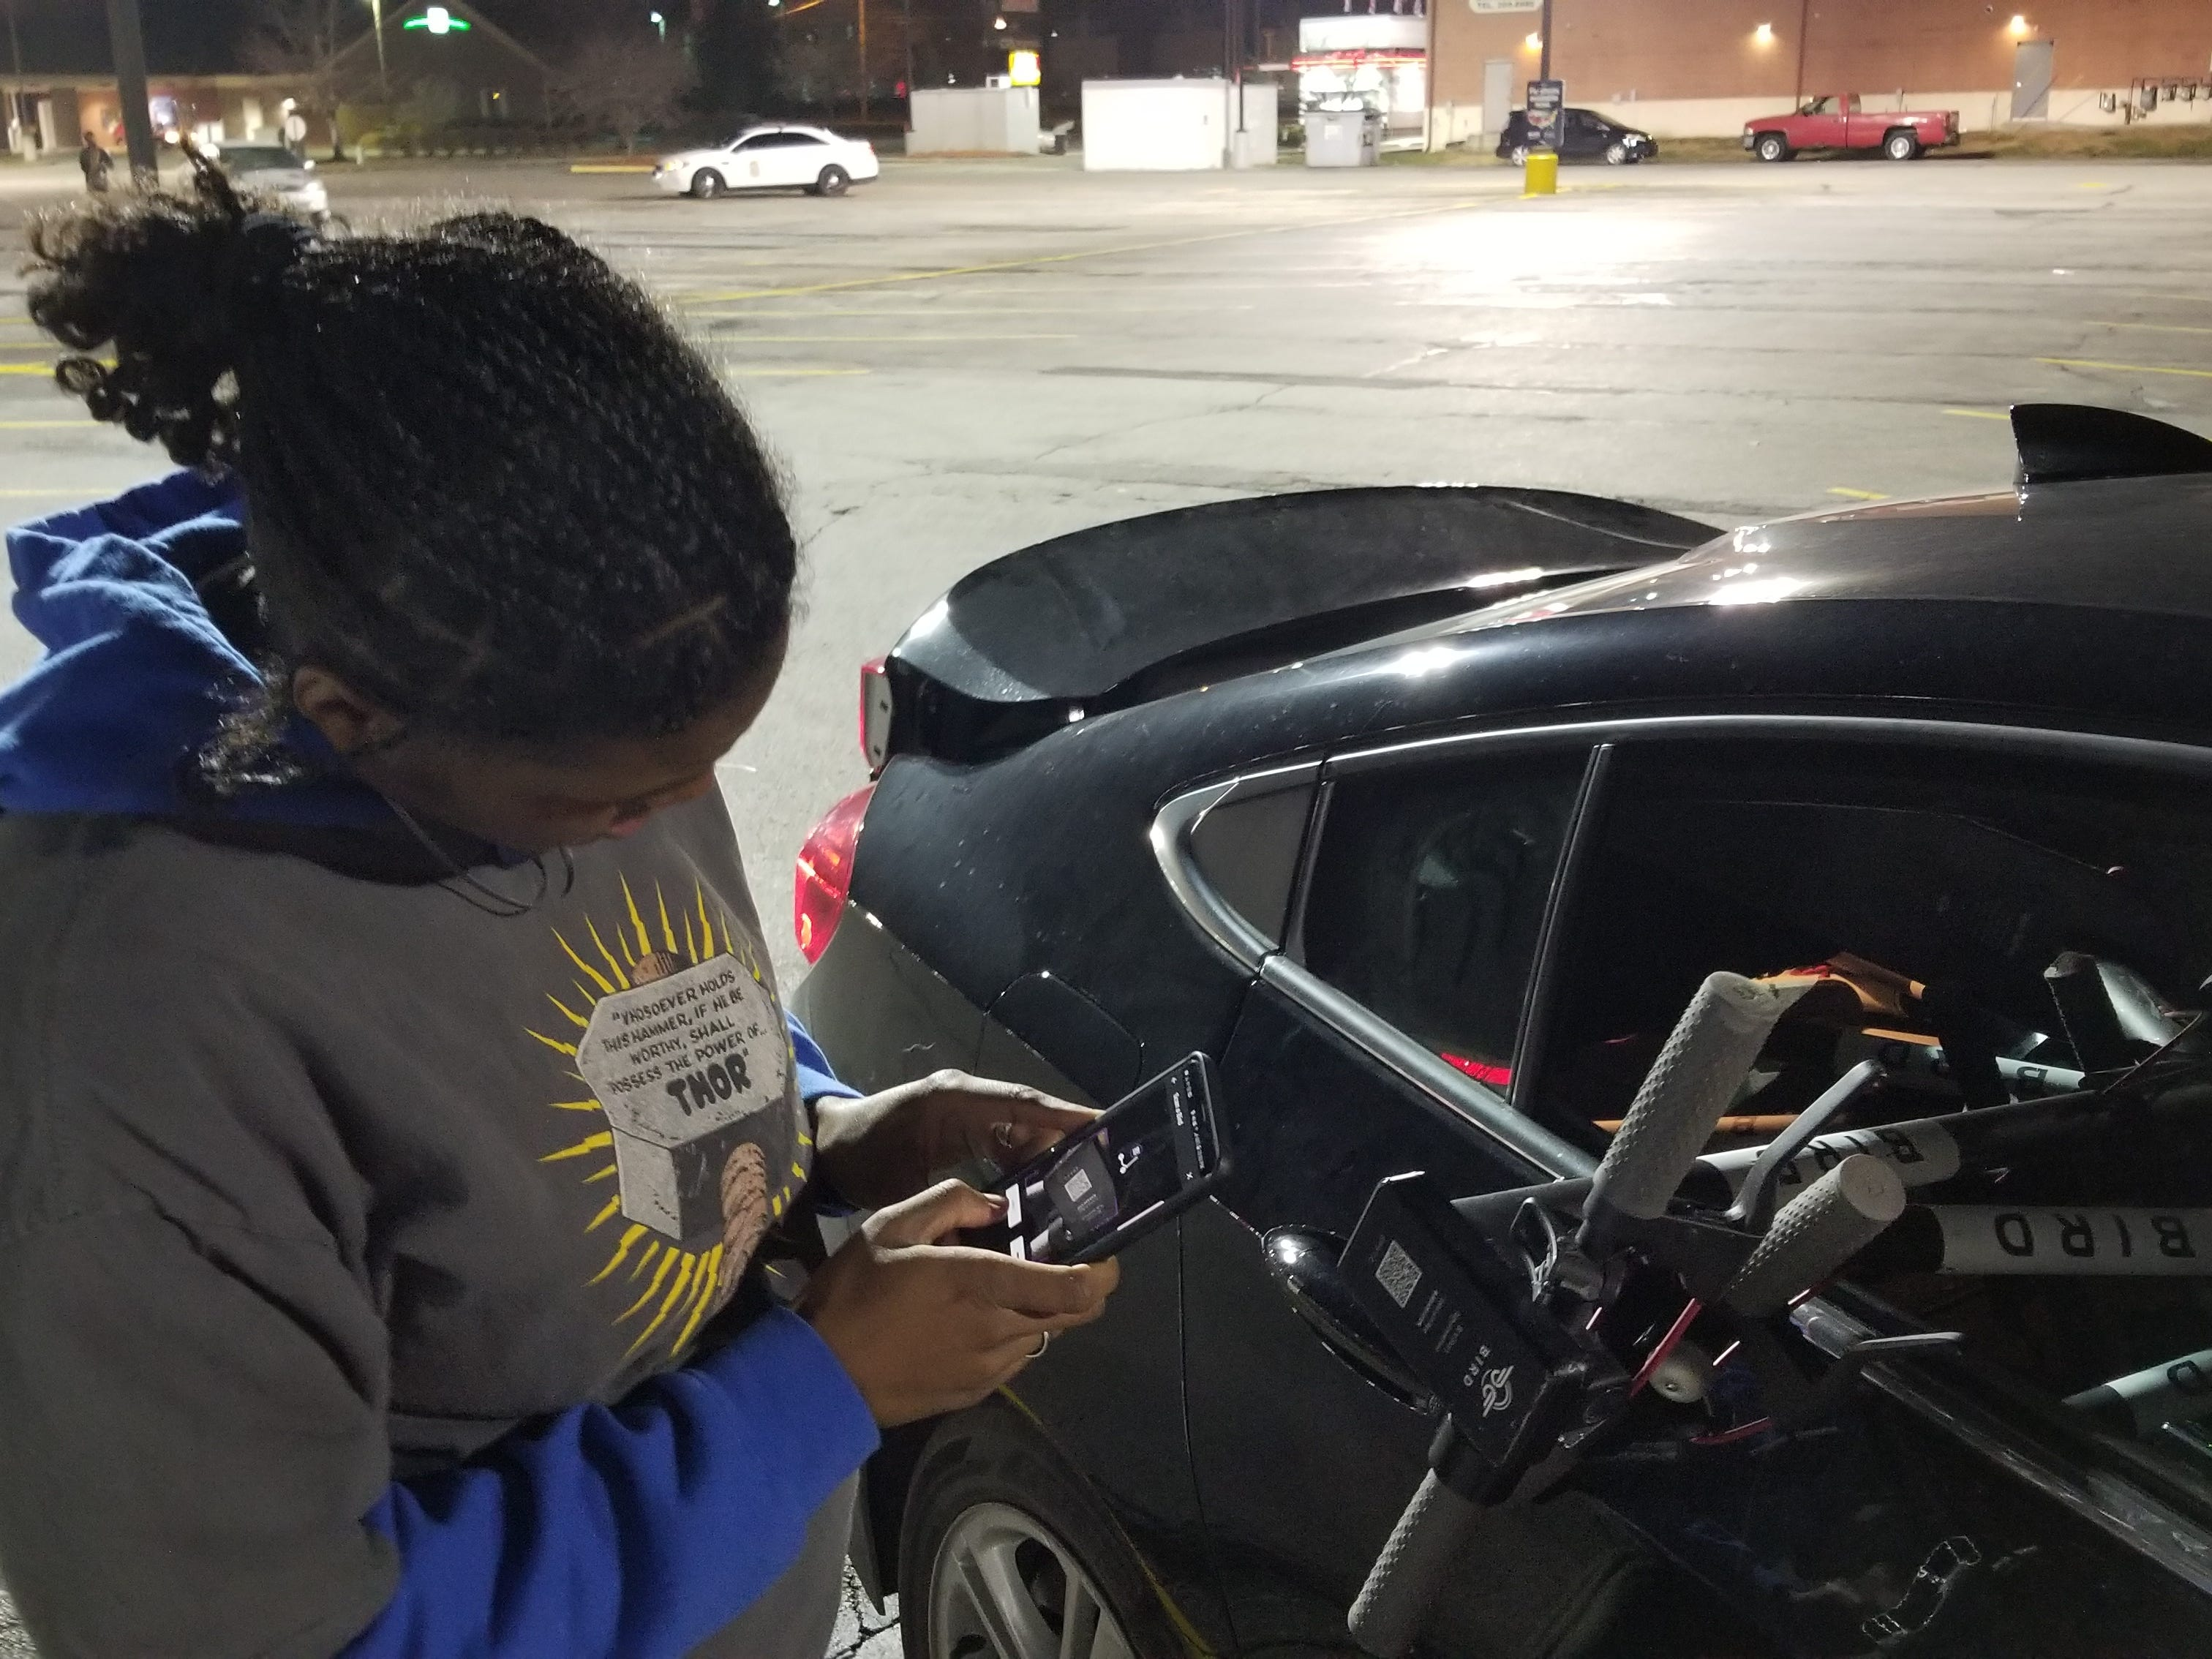 Simone Thomas scans a Bird scooter on Nov. 21, 2018, in Indianapolis.